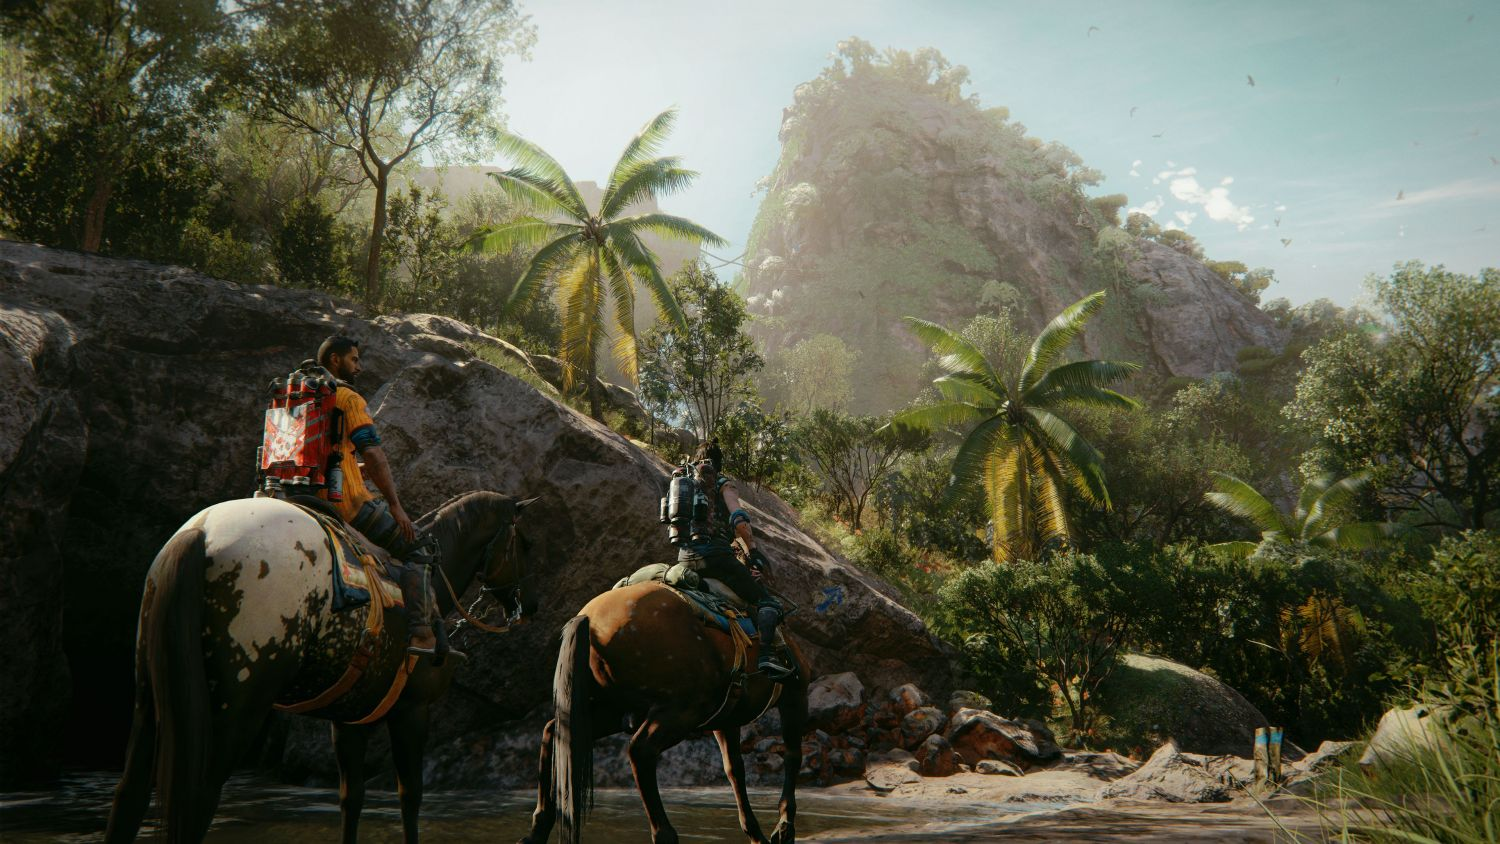 Horse-riding in Far Cry 6